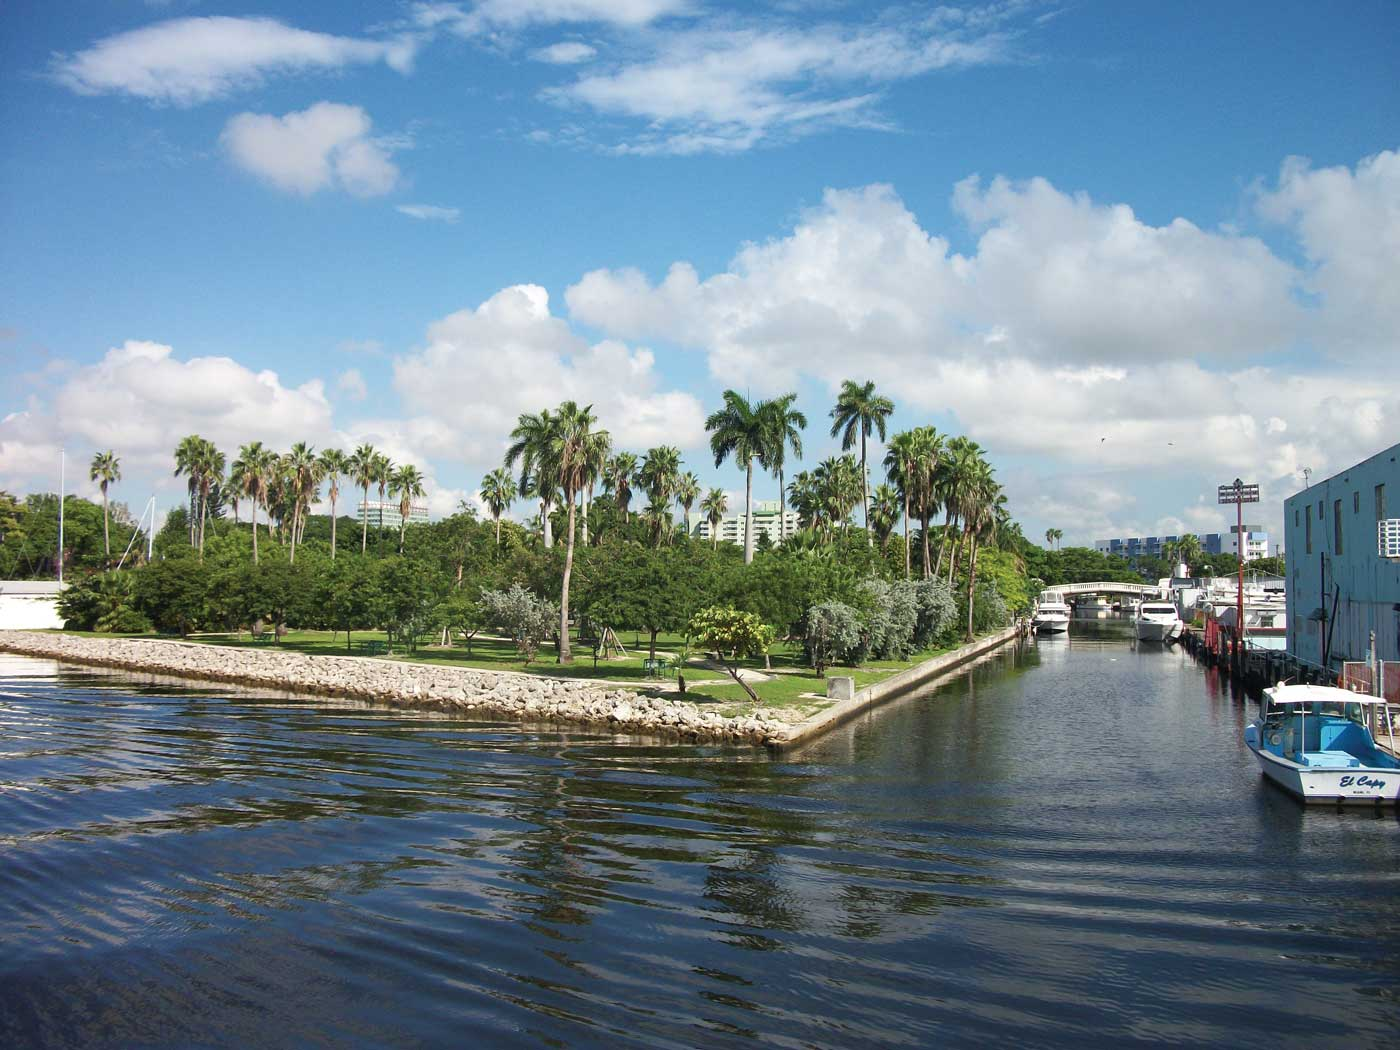 Cleanup of Miami River tributaries to start in May